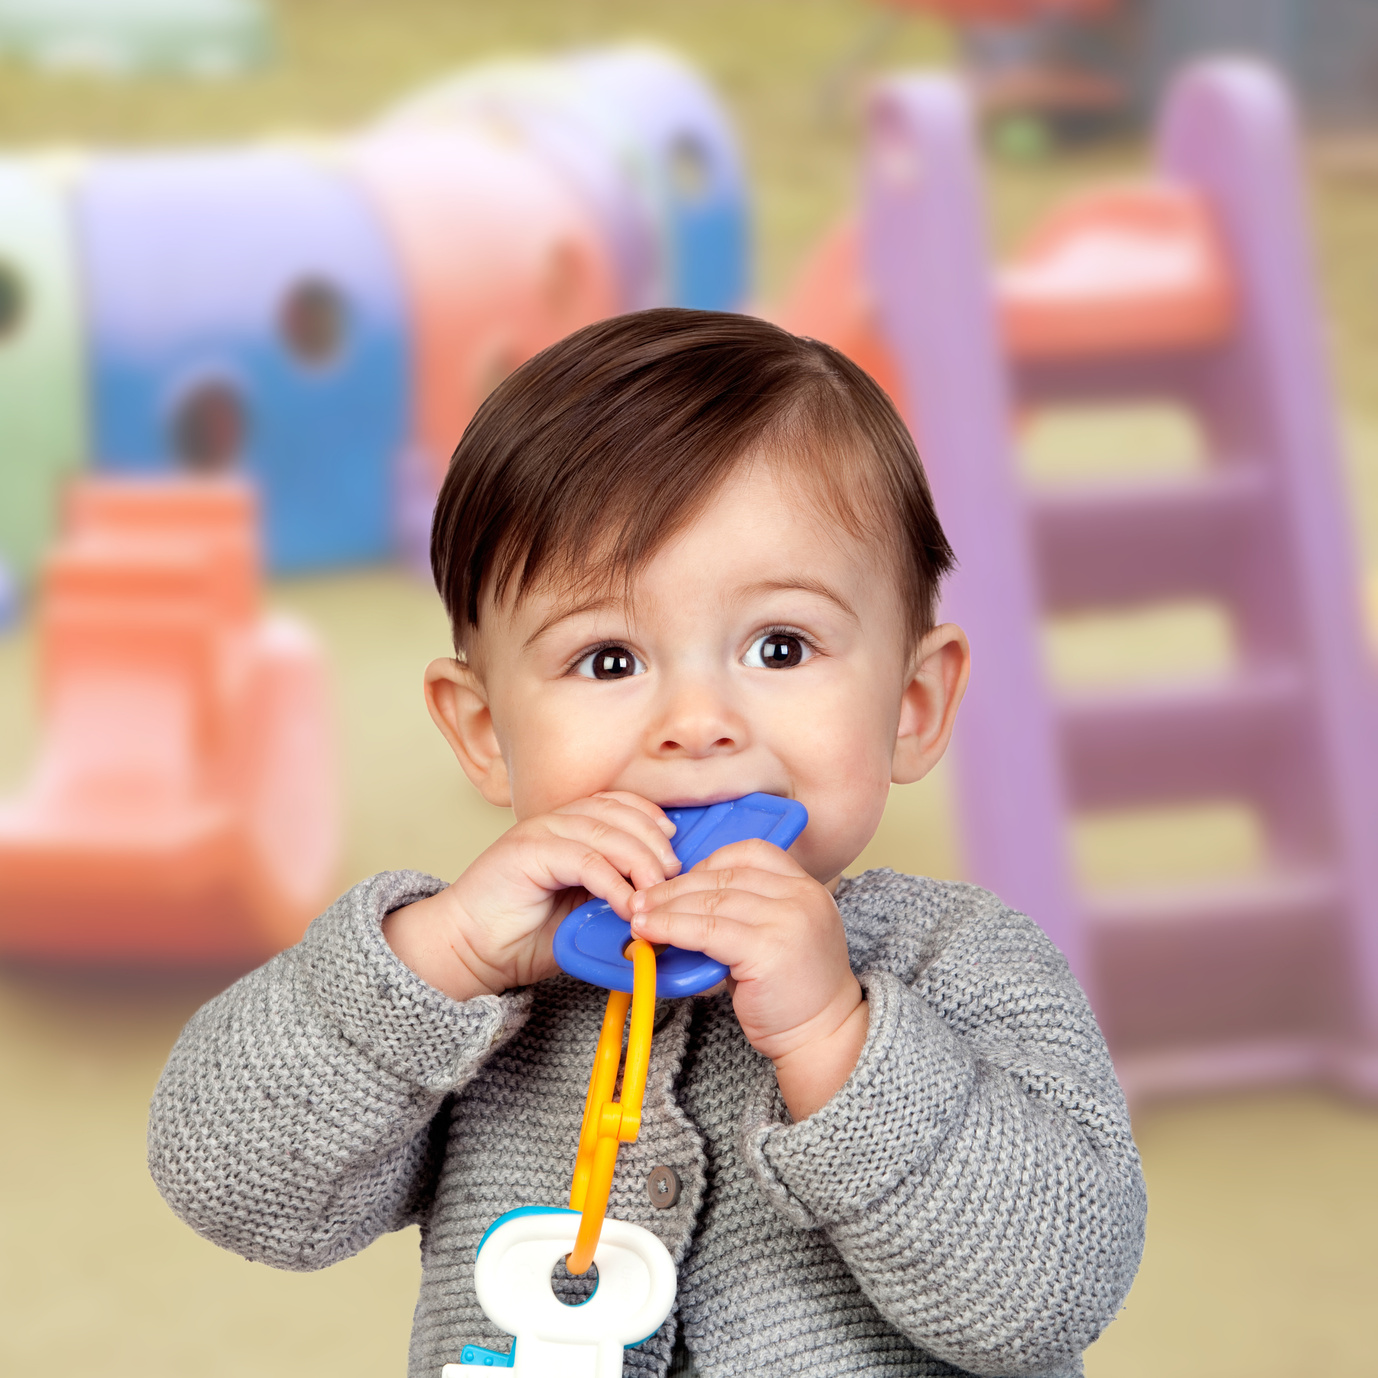 Pediatric Dental Coverage and the Affordable Care Act: A Few Questions Answered